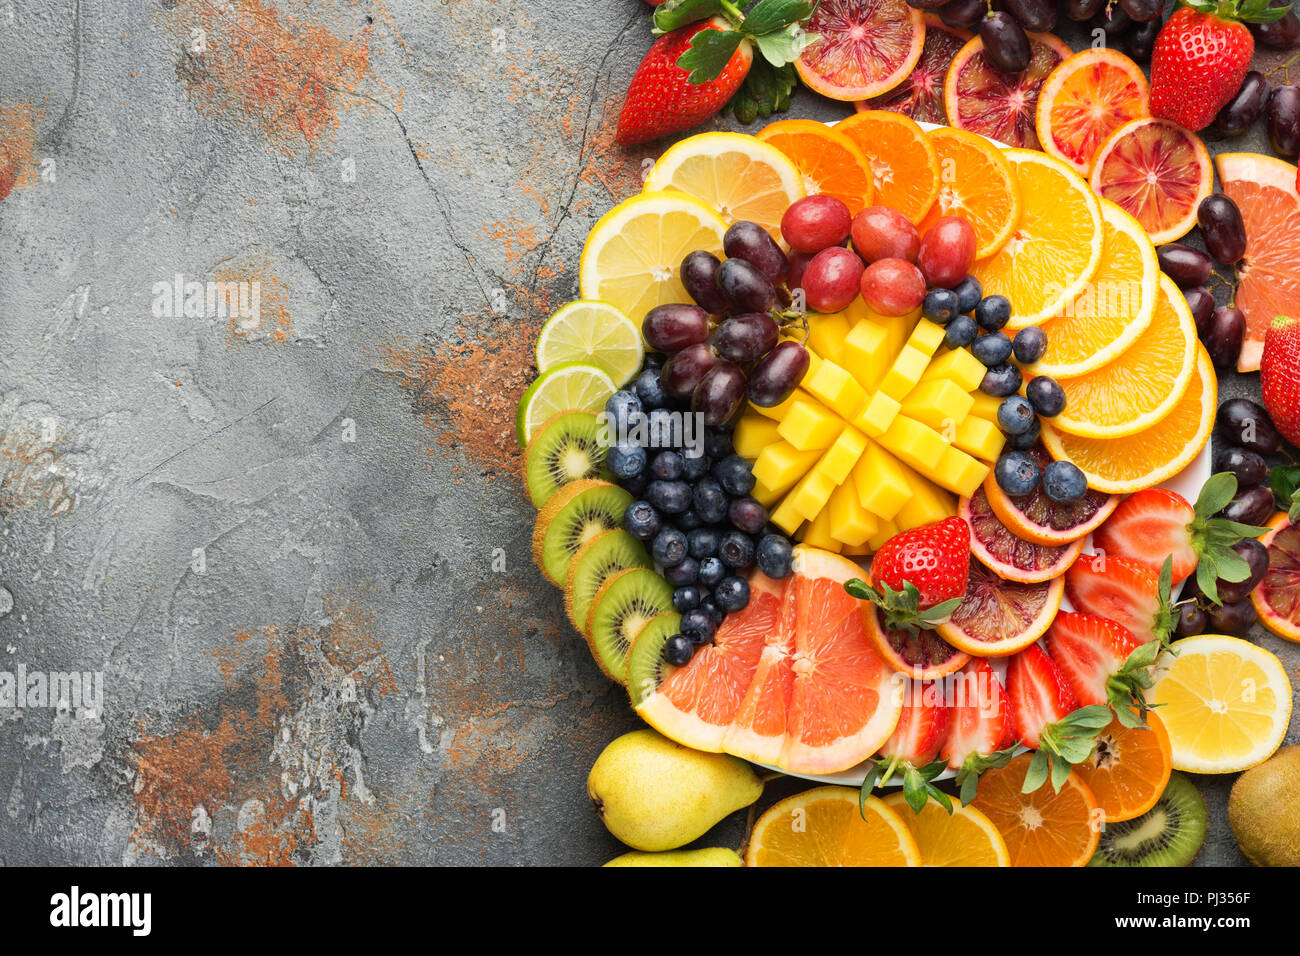 Colorful cut fruits in rainbow colors oranges grapes mango strawberries kiwis blueberries grapefruit on the grey concrete table, top view, copy space, selective focus Stock Photo